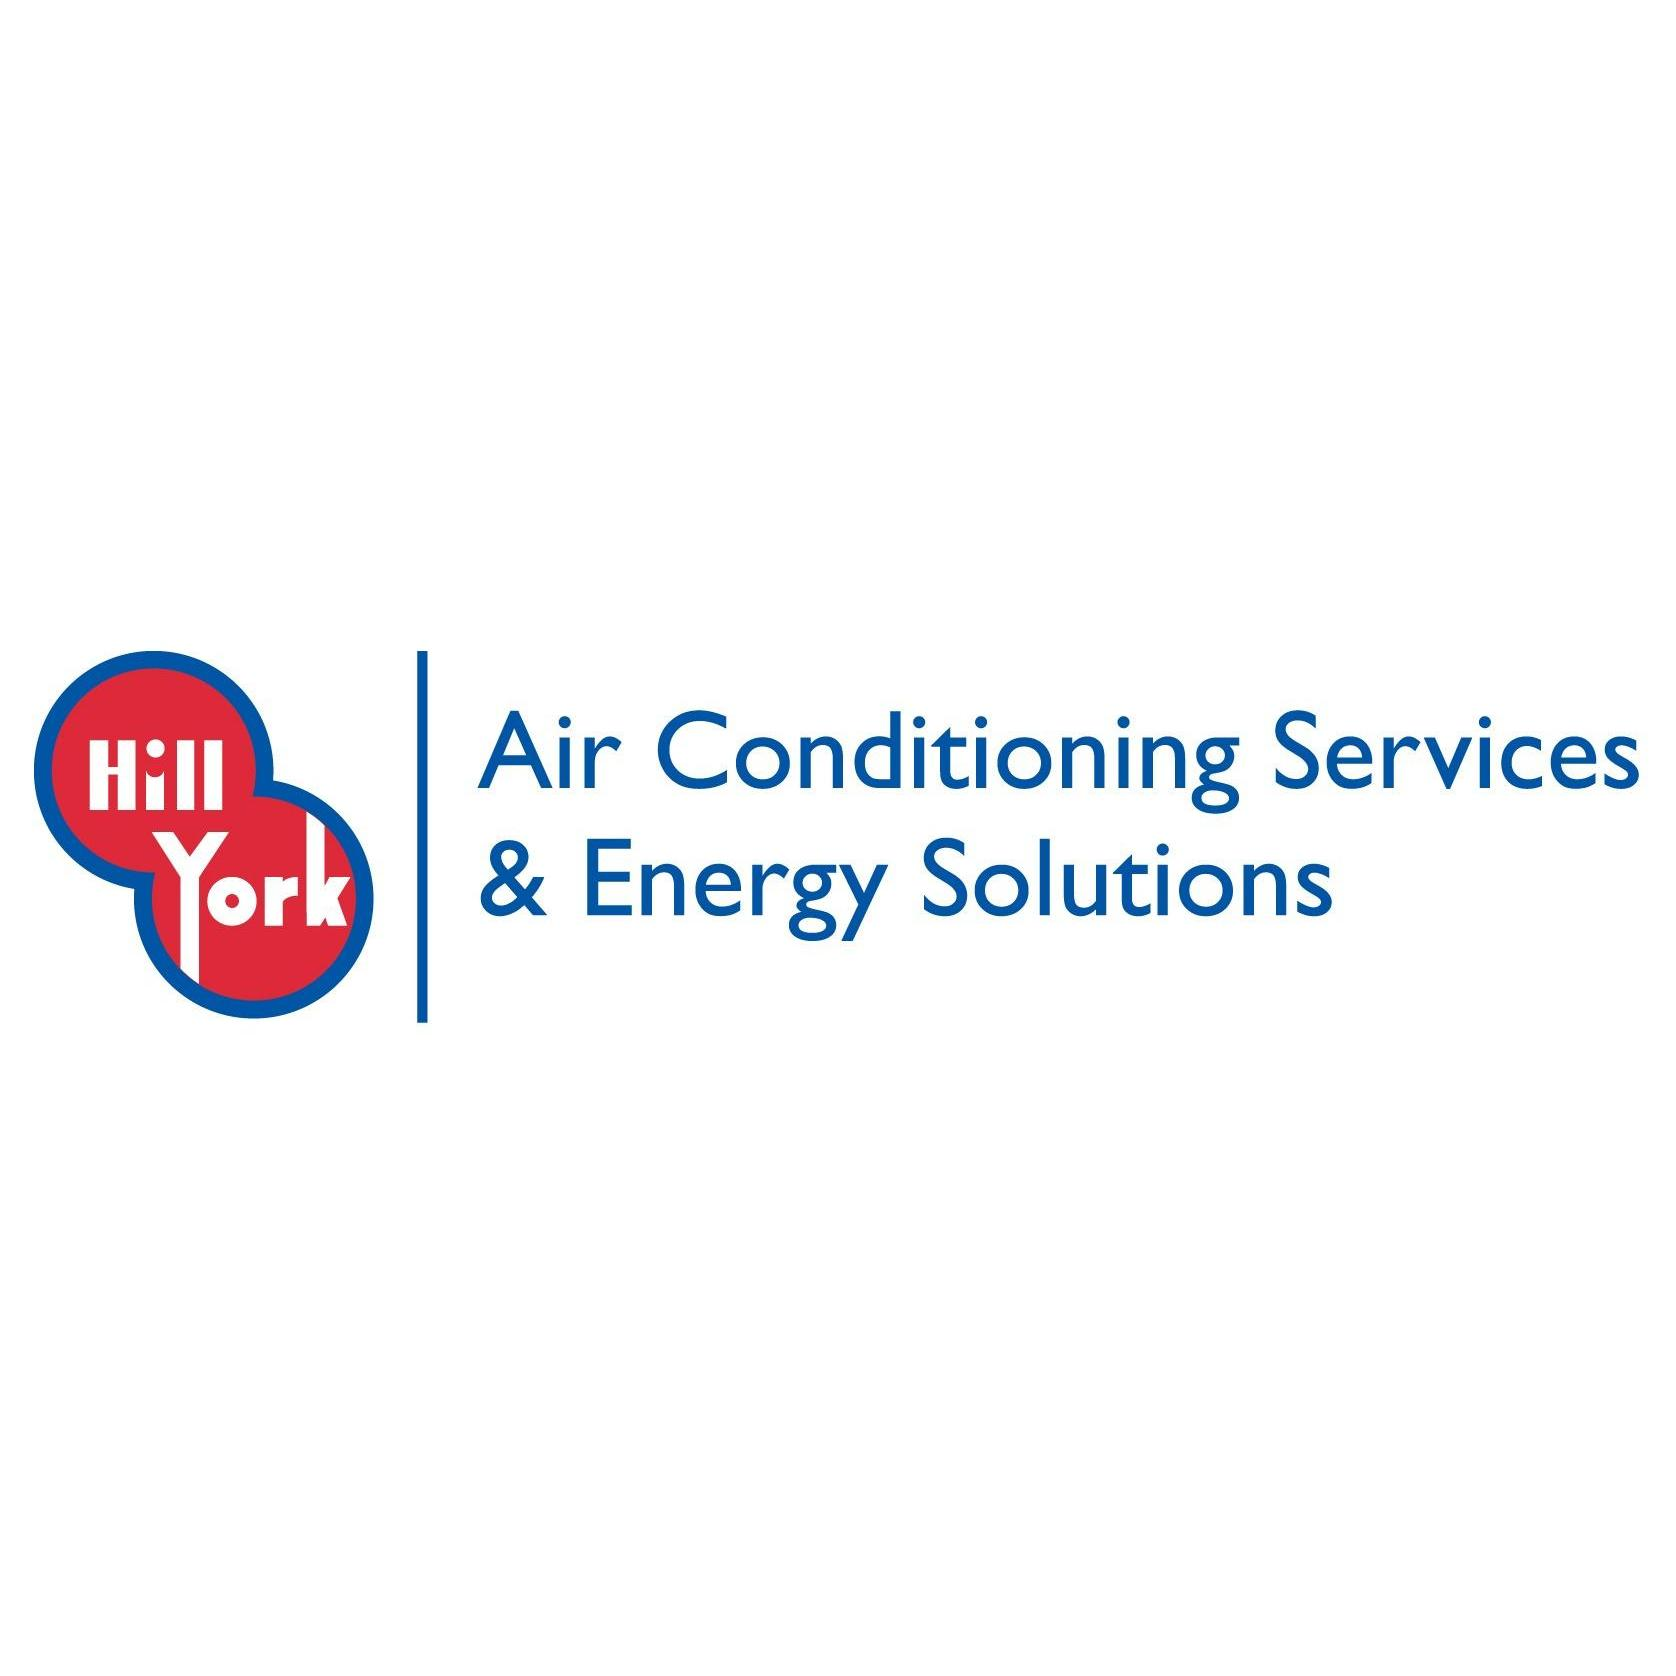 Hill York Air Conditioning & Energy Solutions